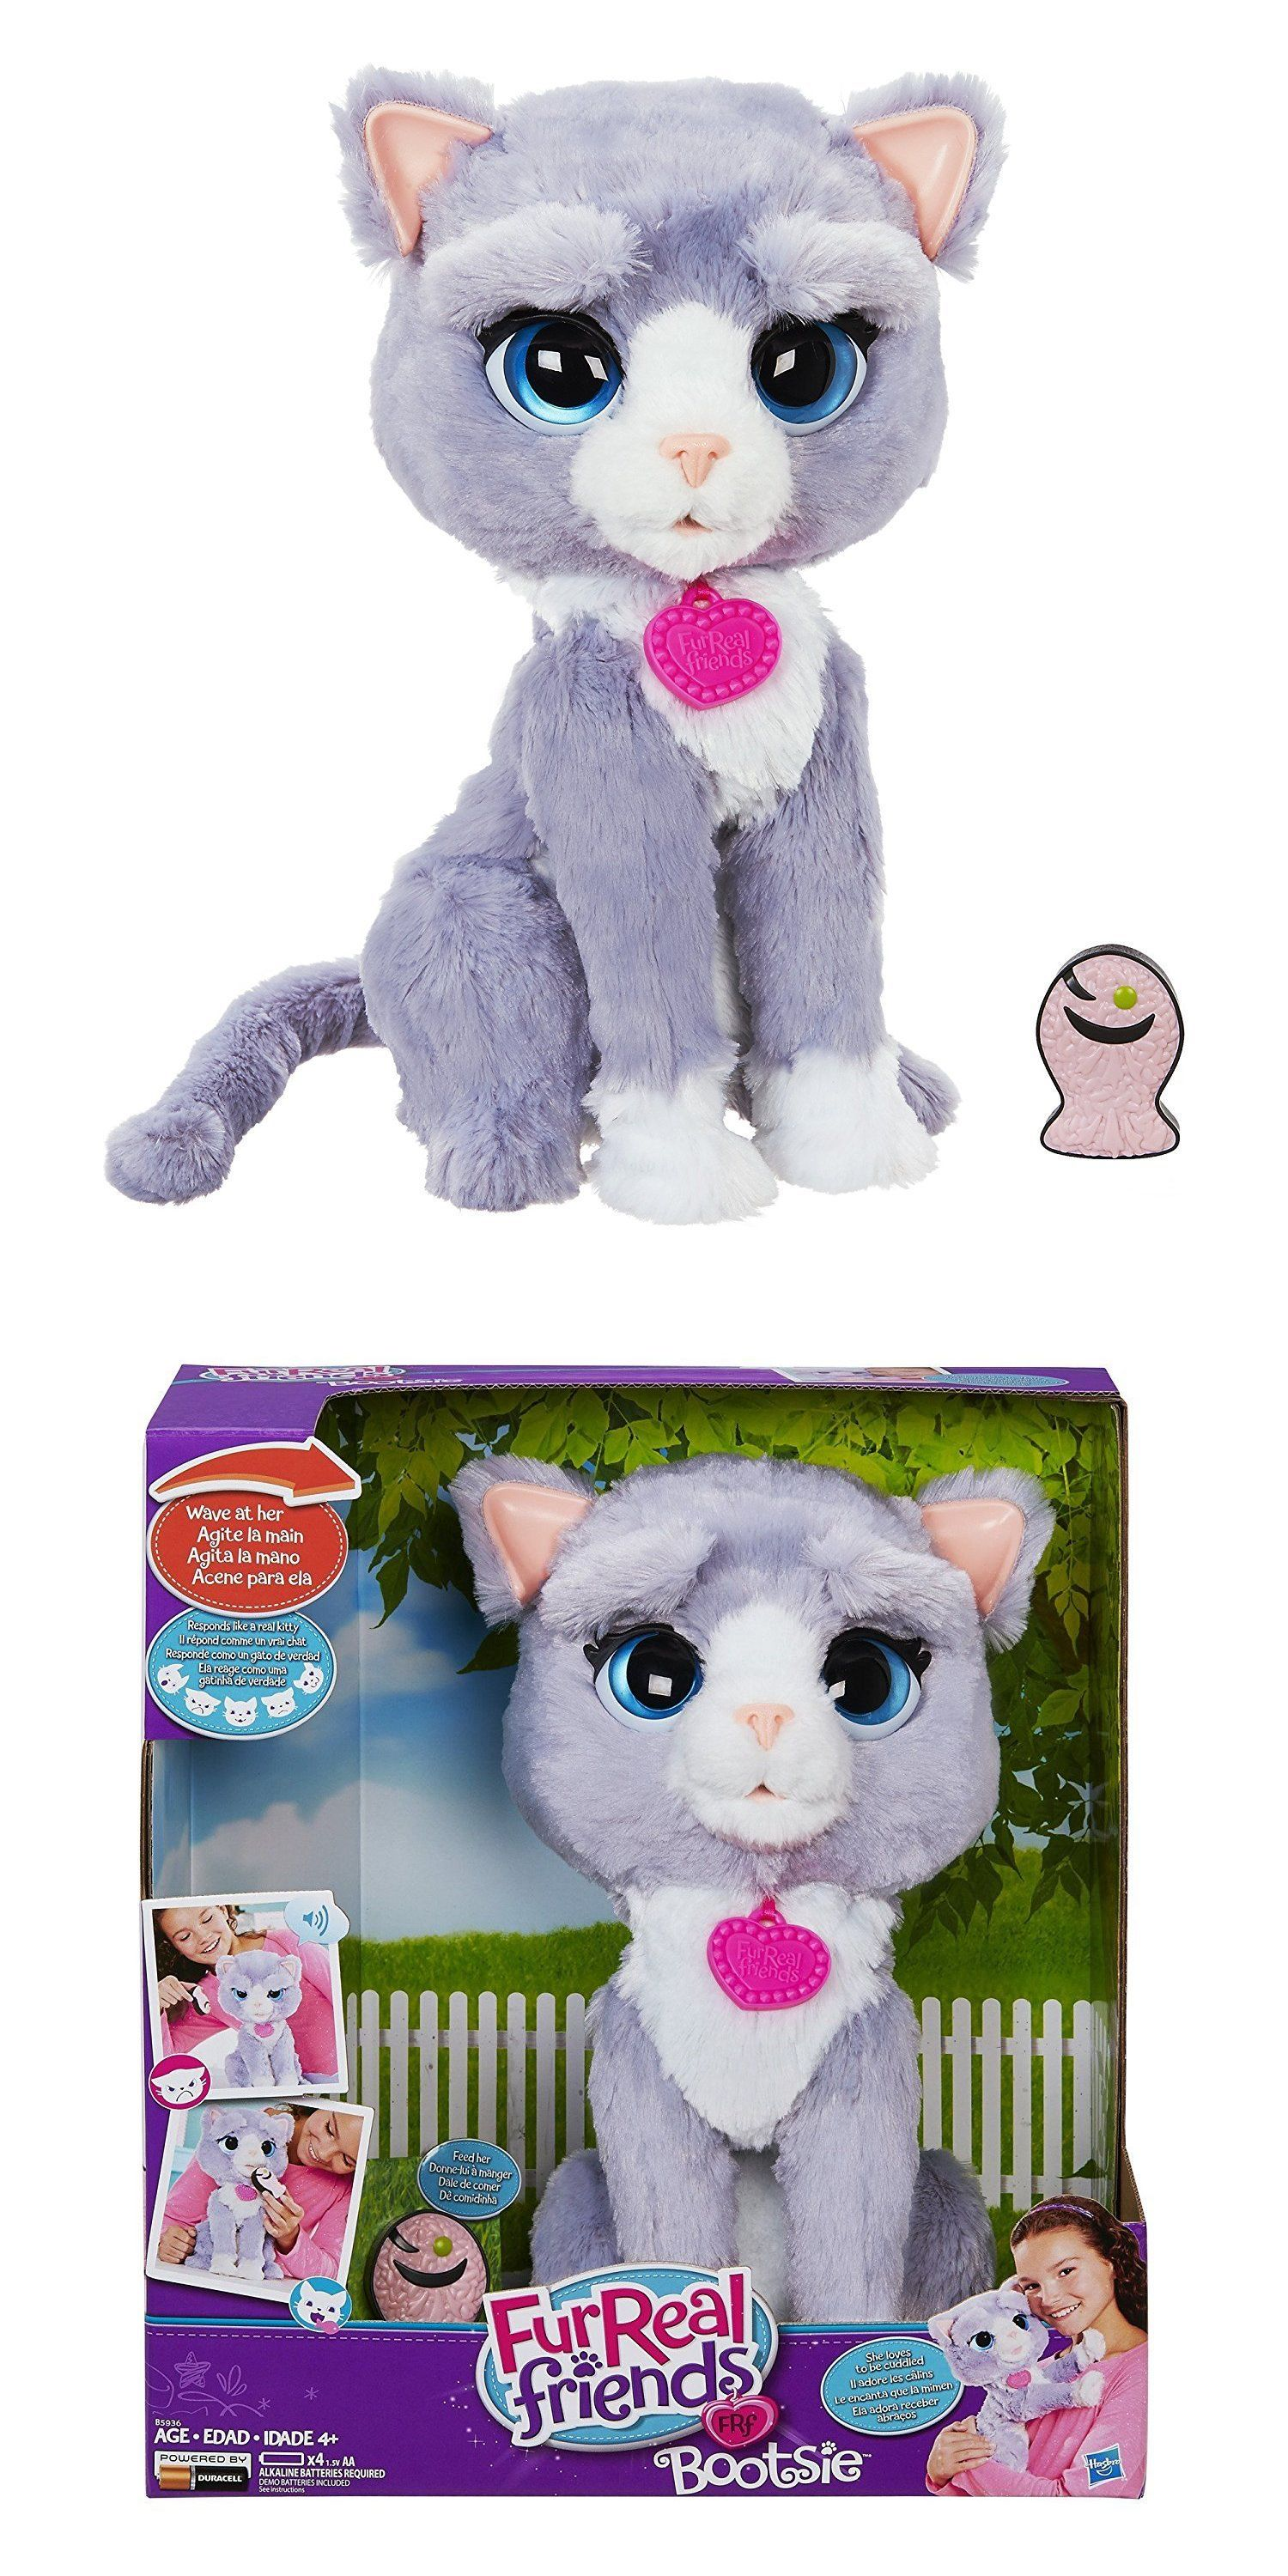 New Hasbro Furreal Friends Bootsie Pet Toy Kitty Cat Free Ship Fur Real Friends Baby Girl Toys Hugs And Cuddles